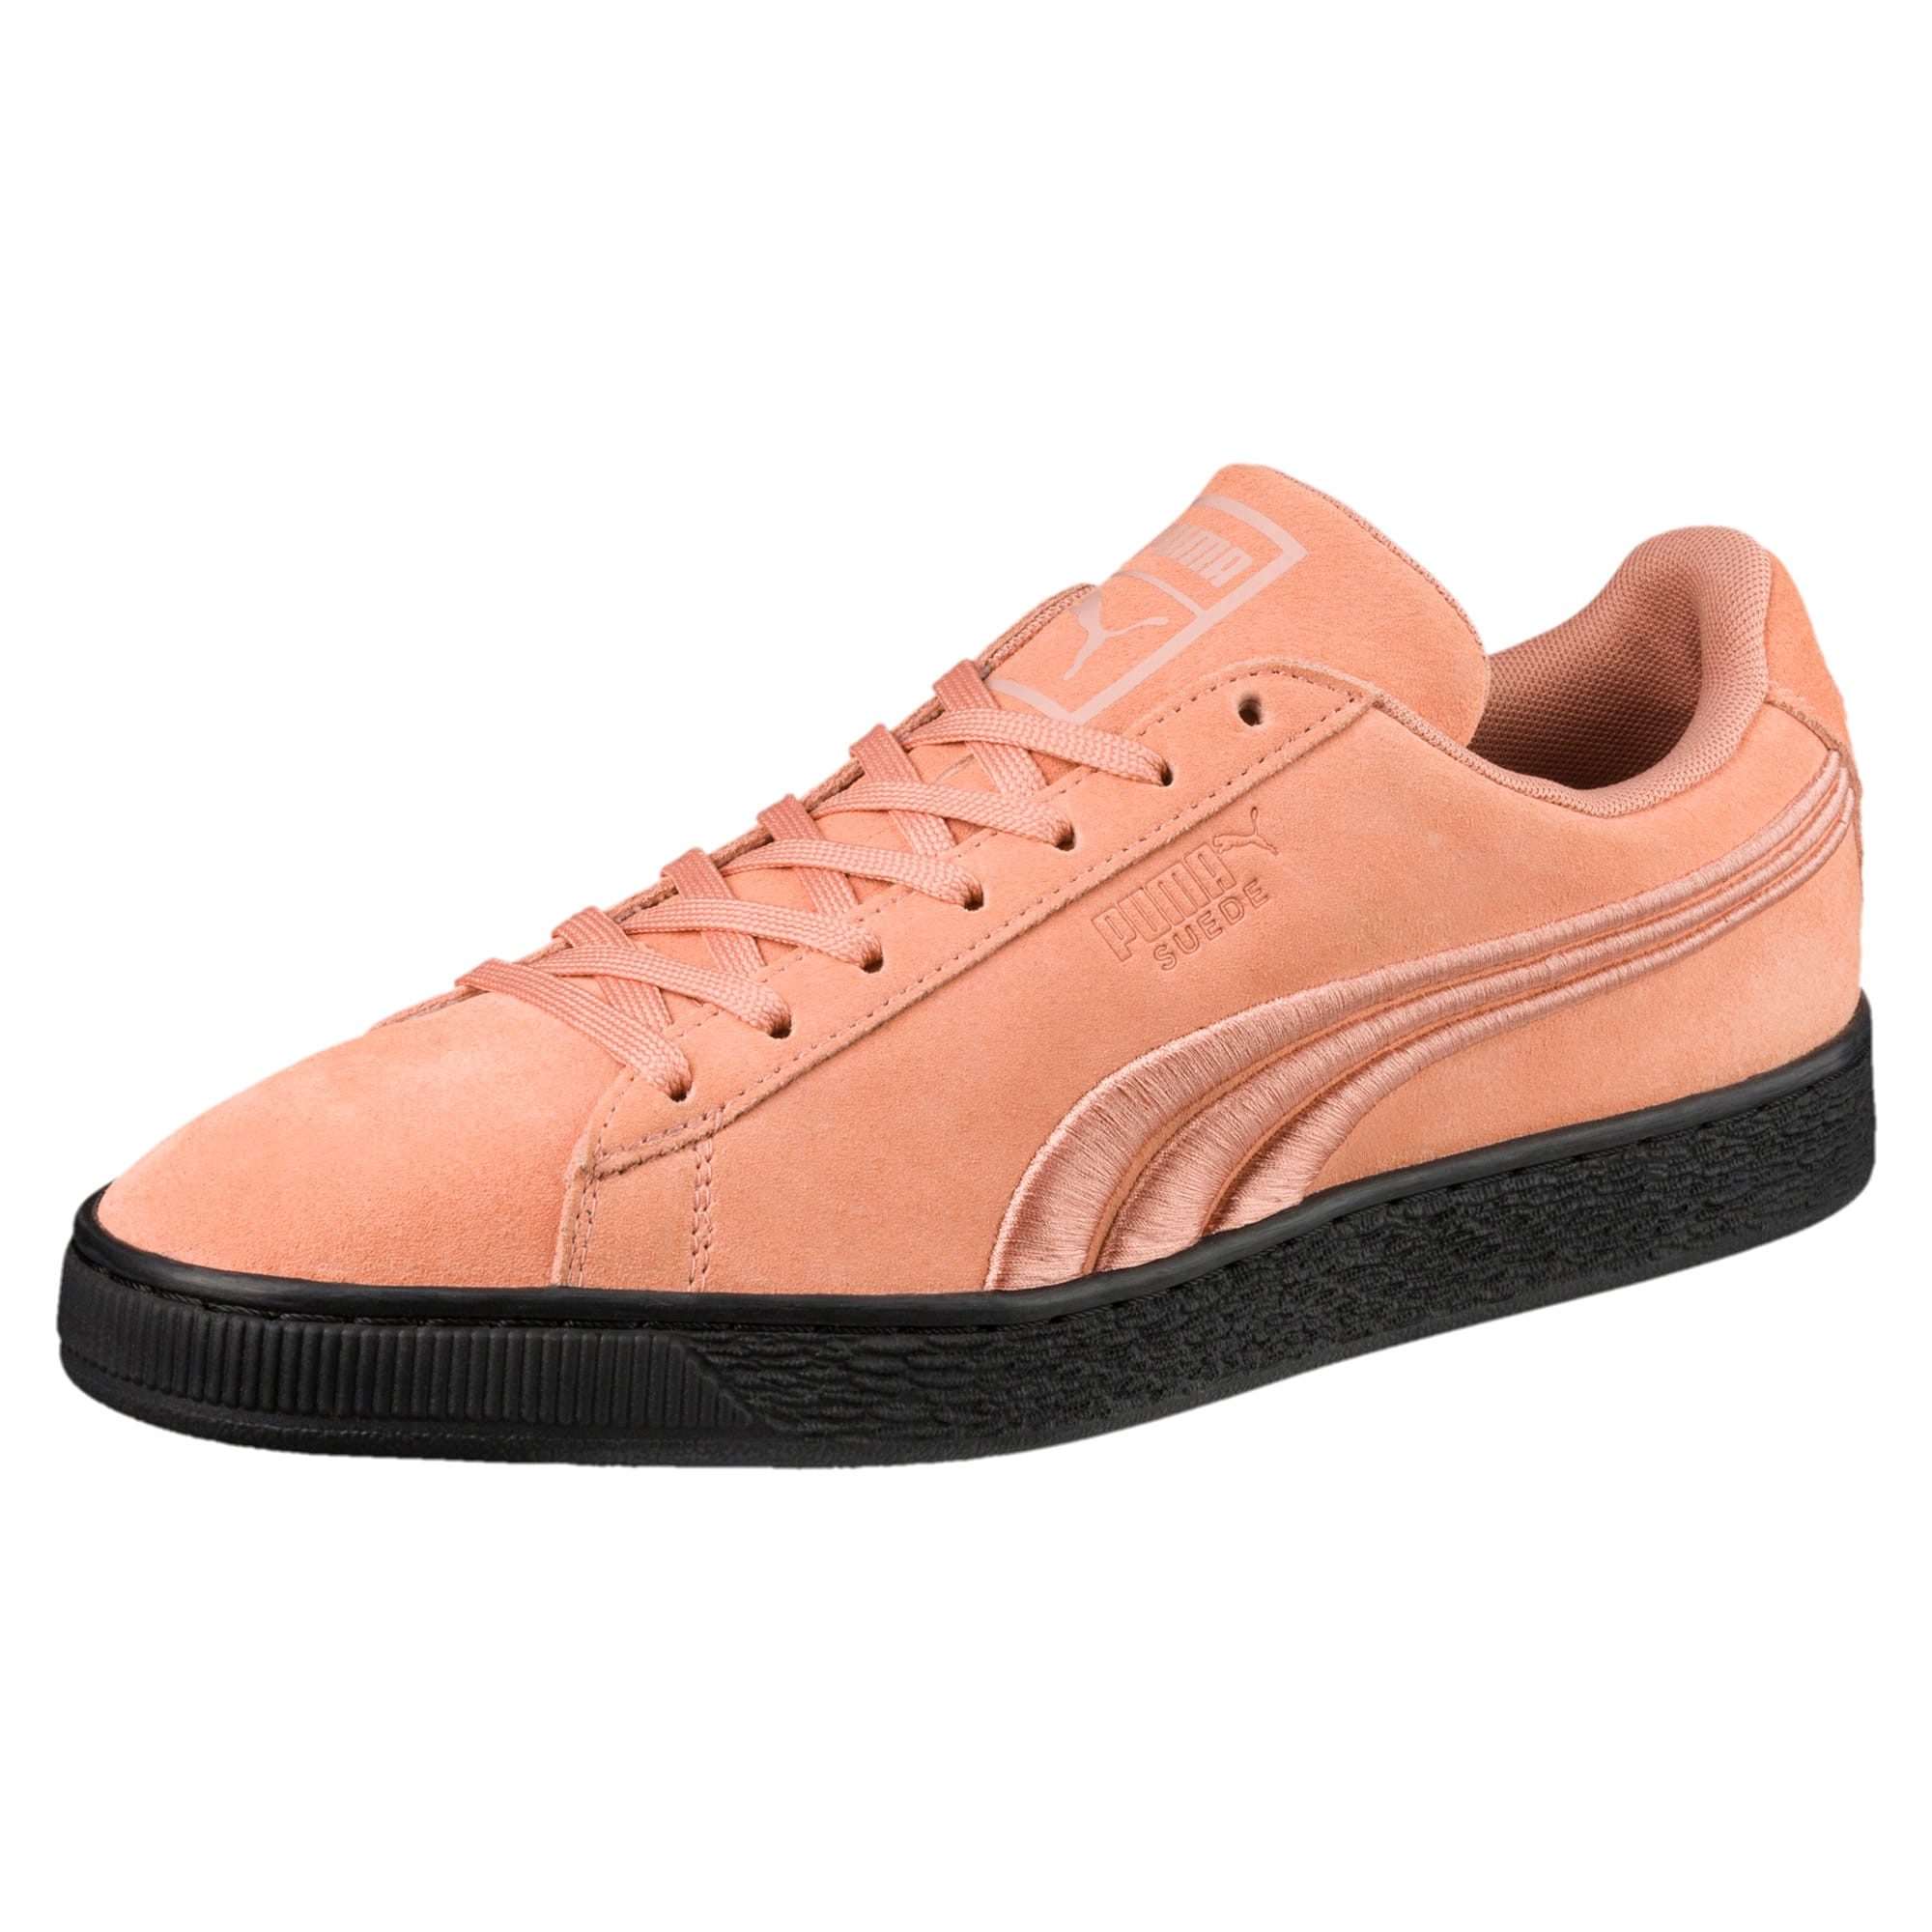 Thumbnail 1 of Suede Classic Badge Flip Sneakers, Muted Clay-Puma Black, medium